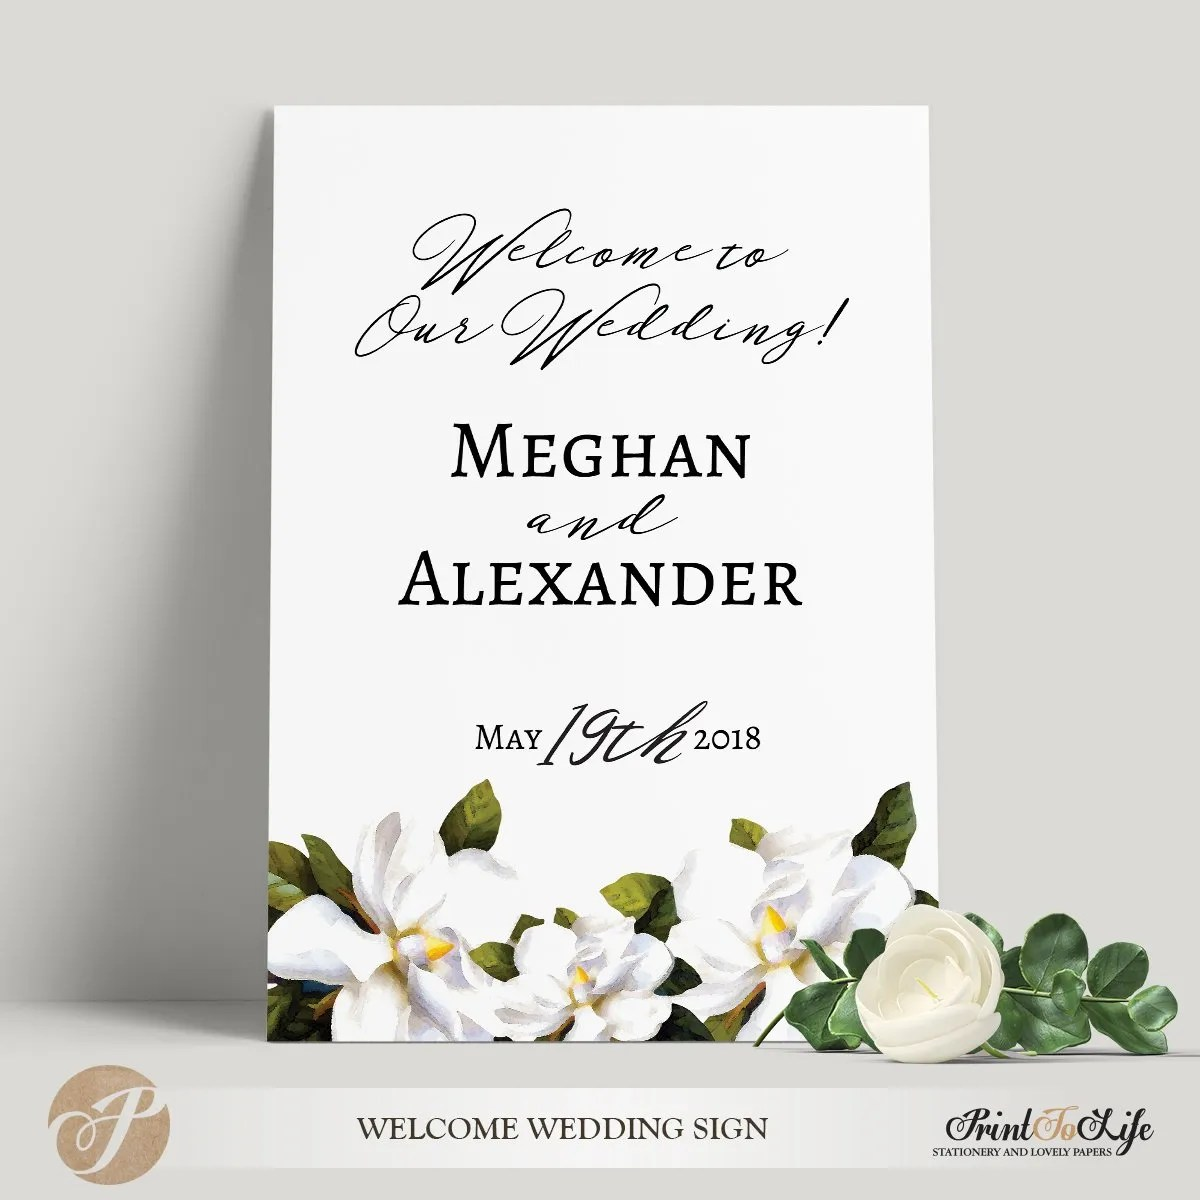 welcome wedding sign wedding poster template magnolia collection